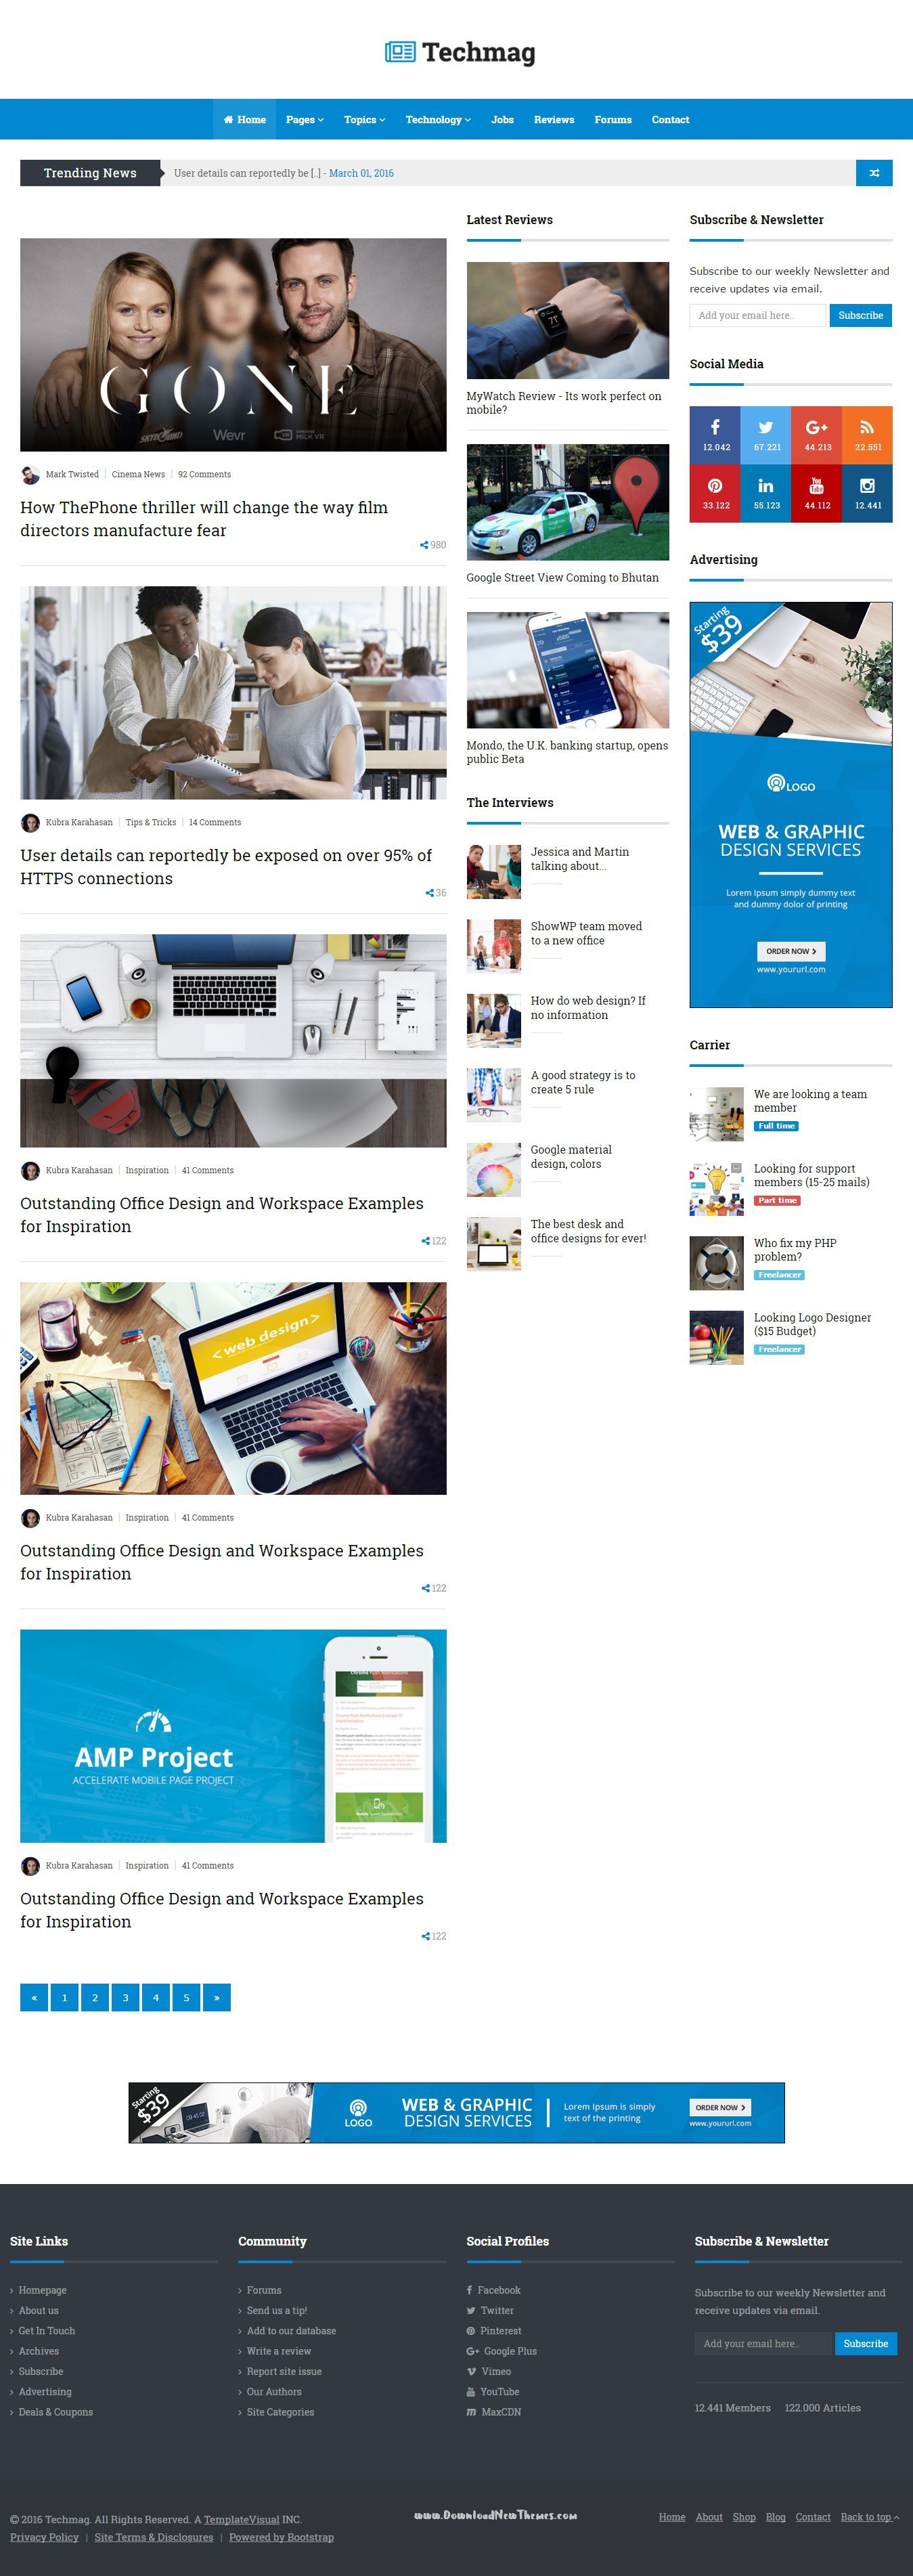 TechMag - News and Magazine BootStrap Template | Template and ...